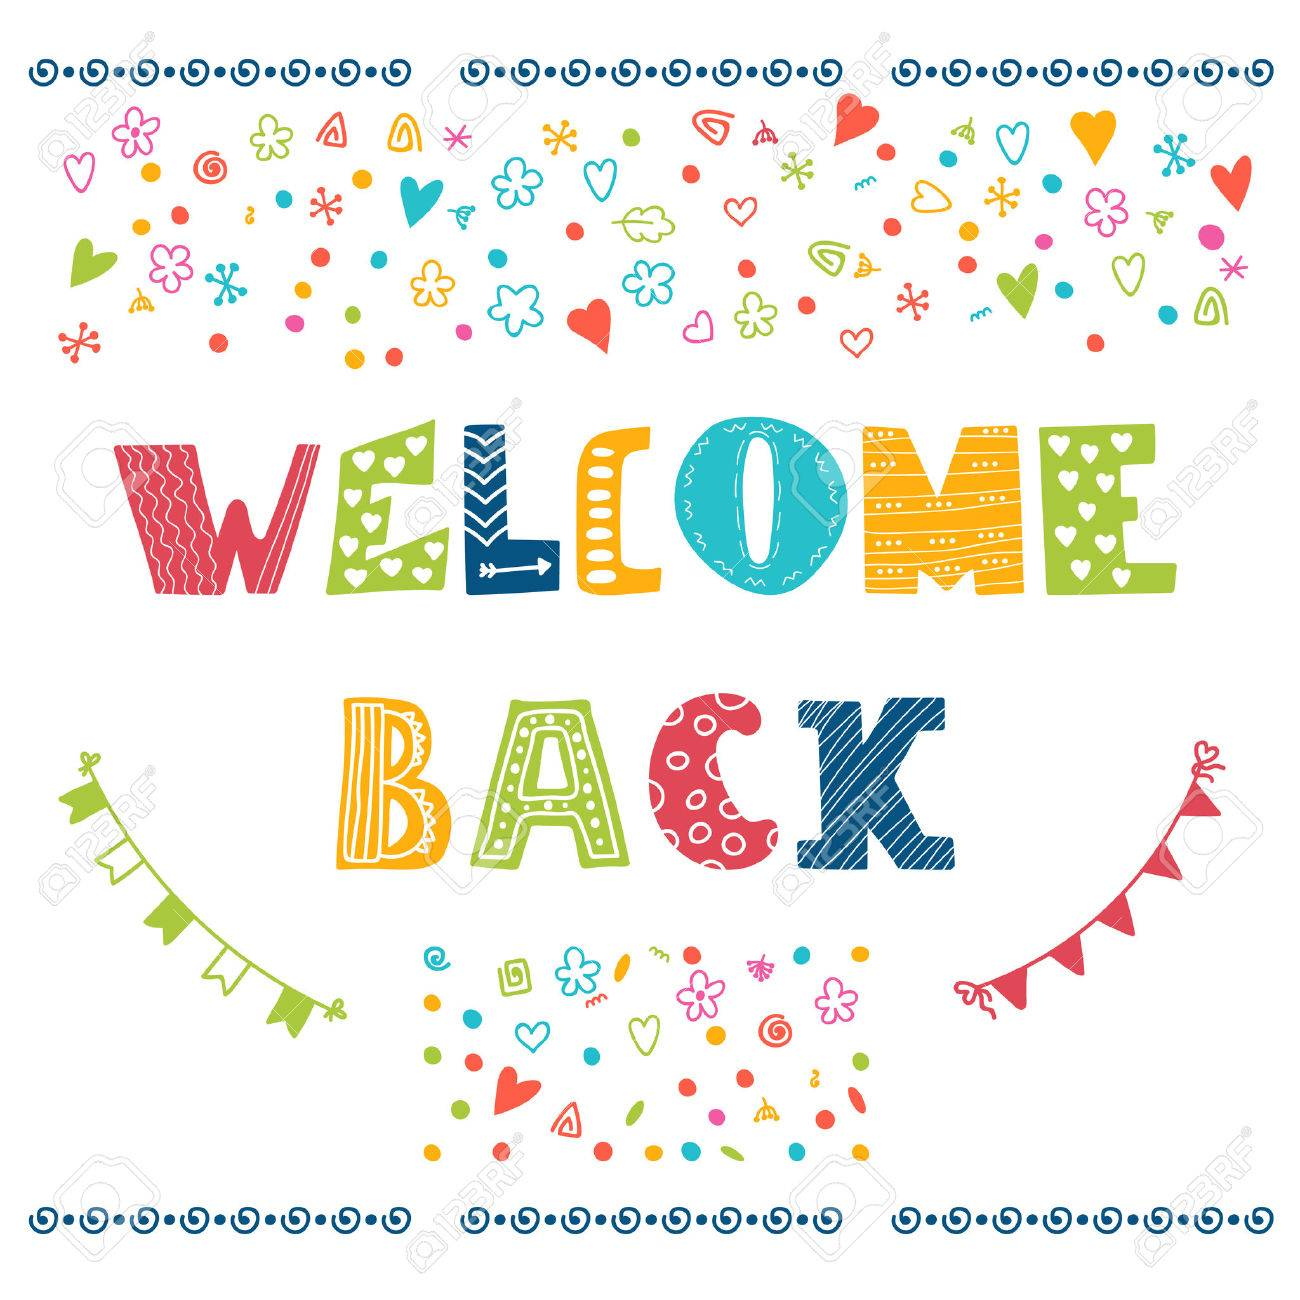 Image result for copyright free 'welcome back' images